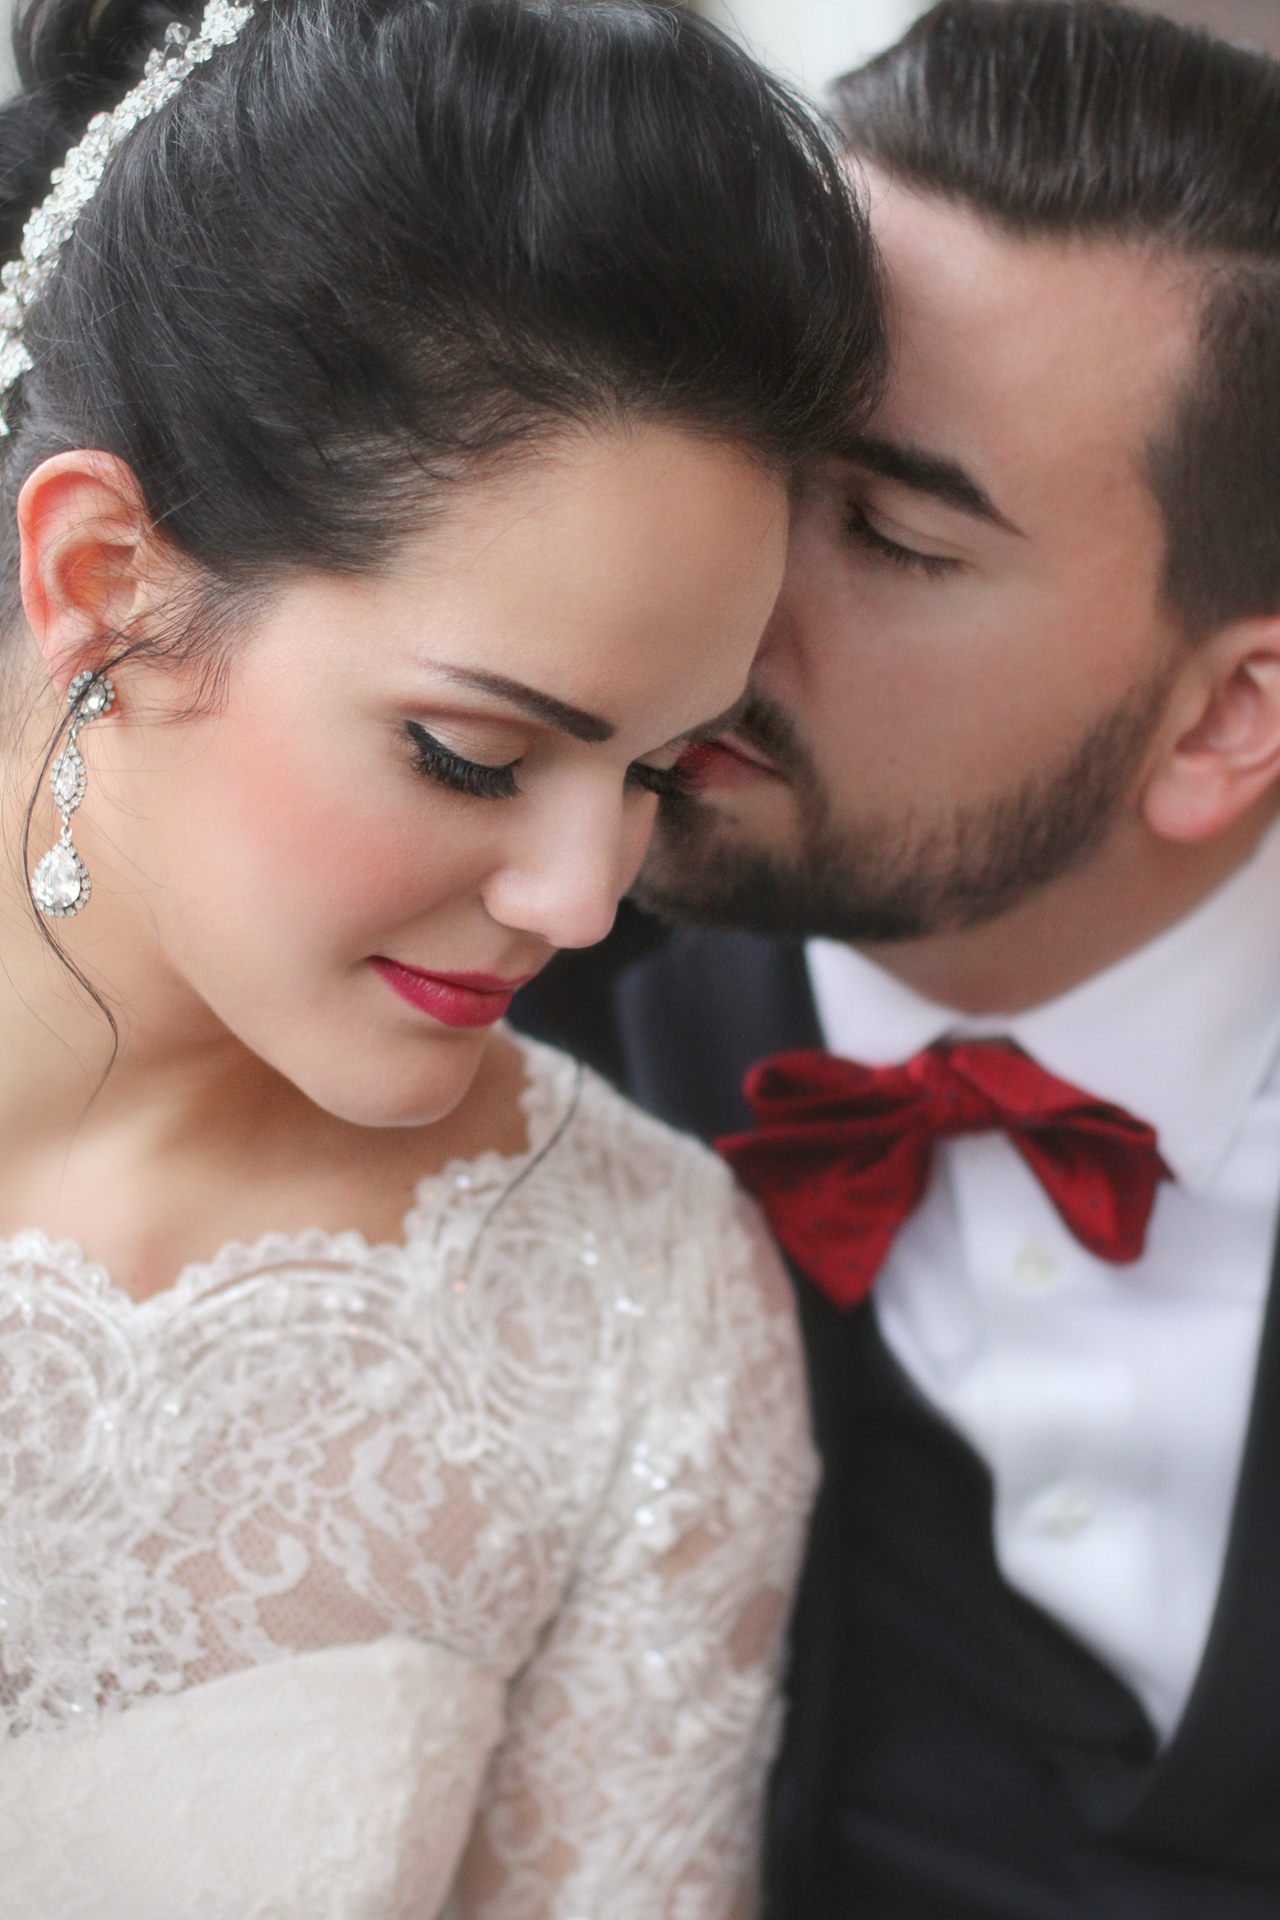 pretty bride and groom with red bowtie